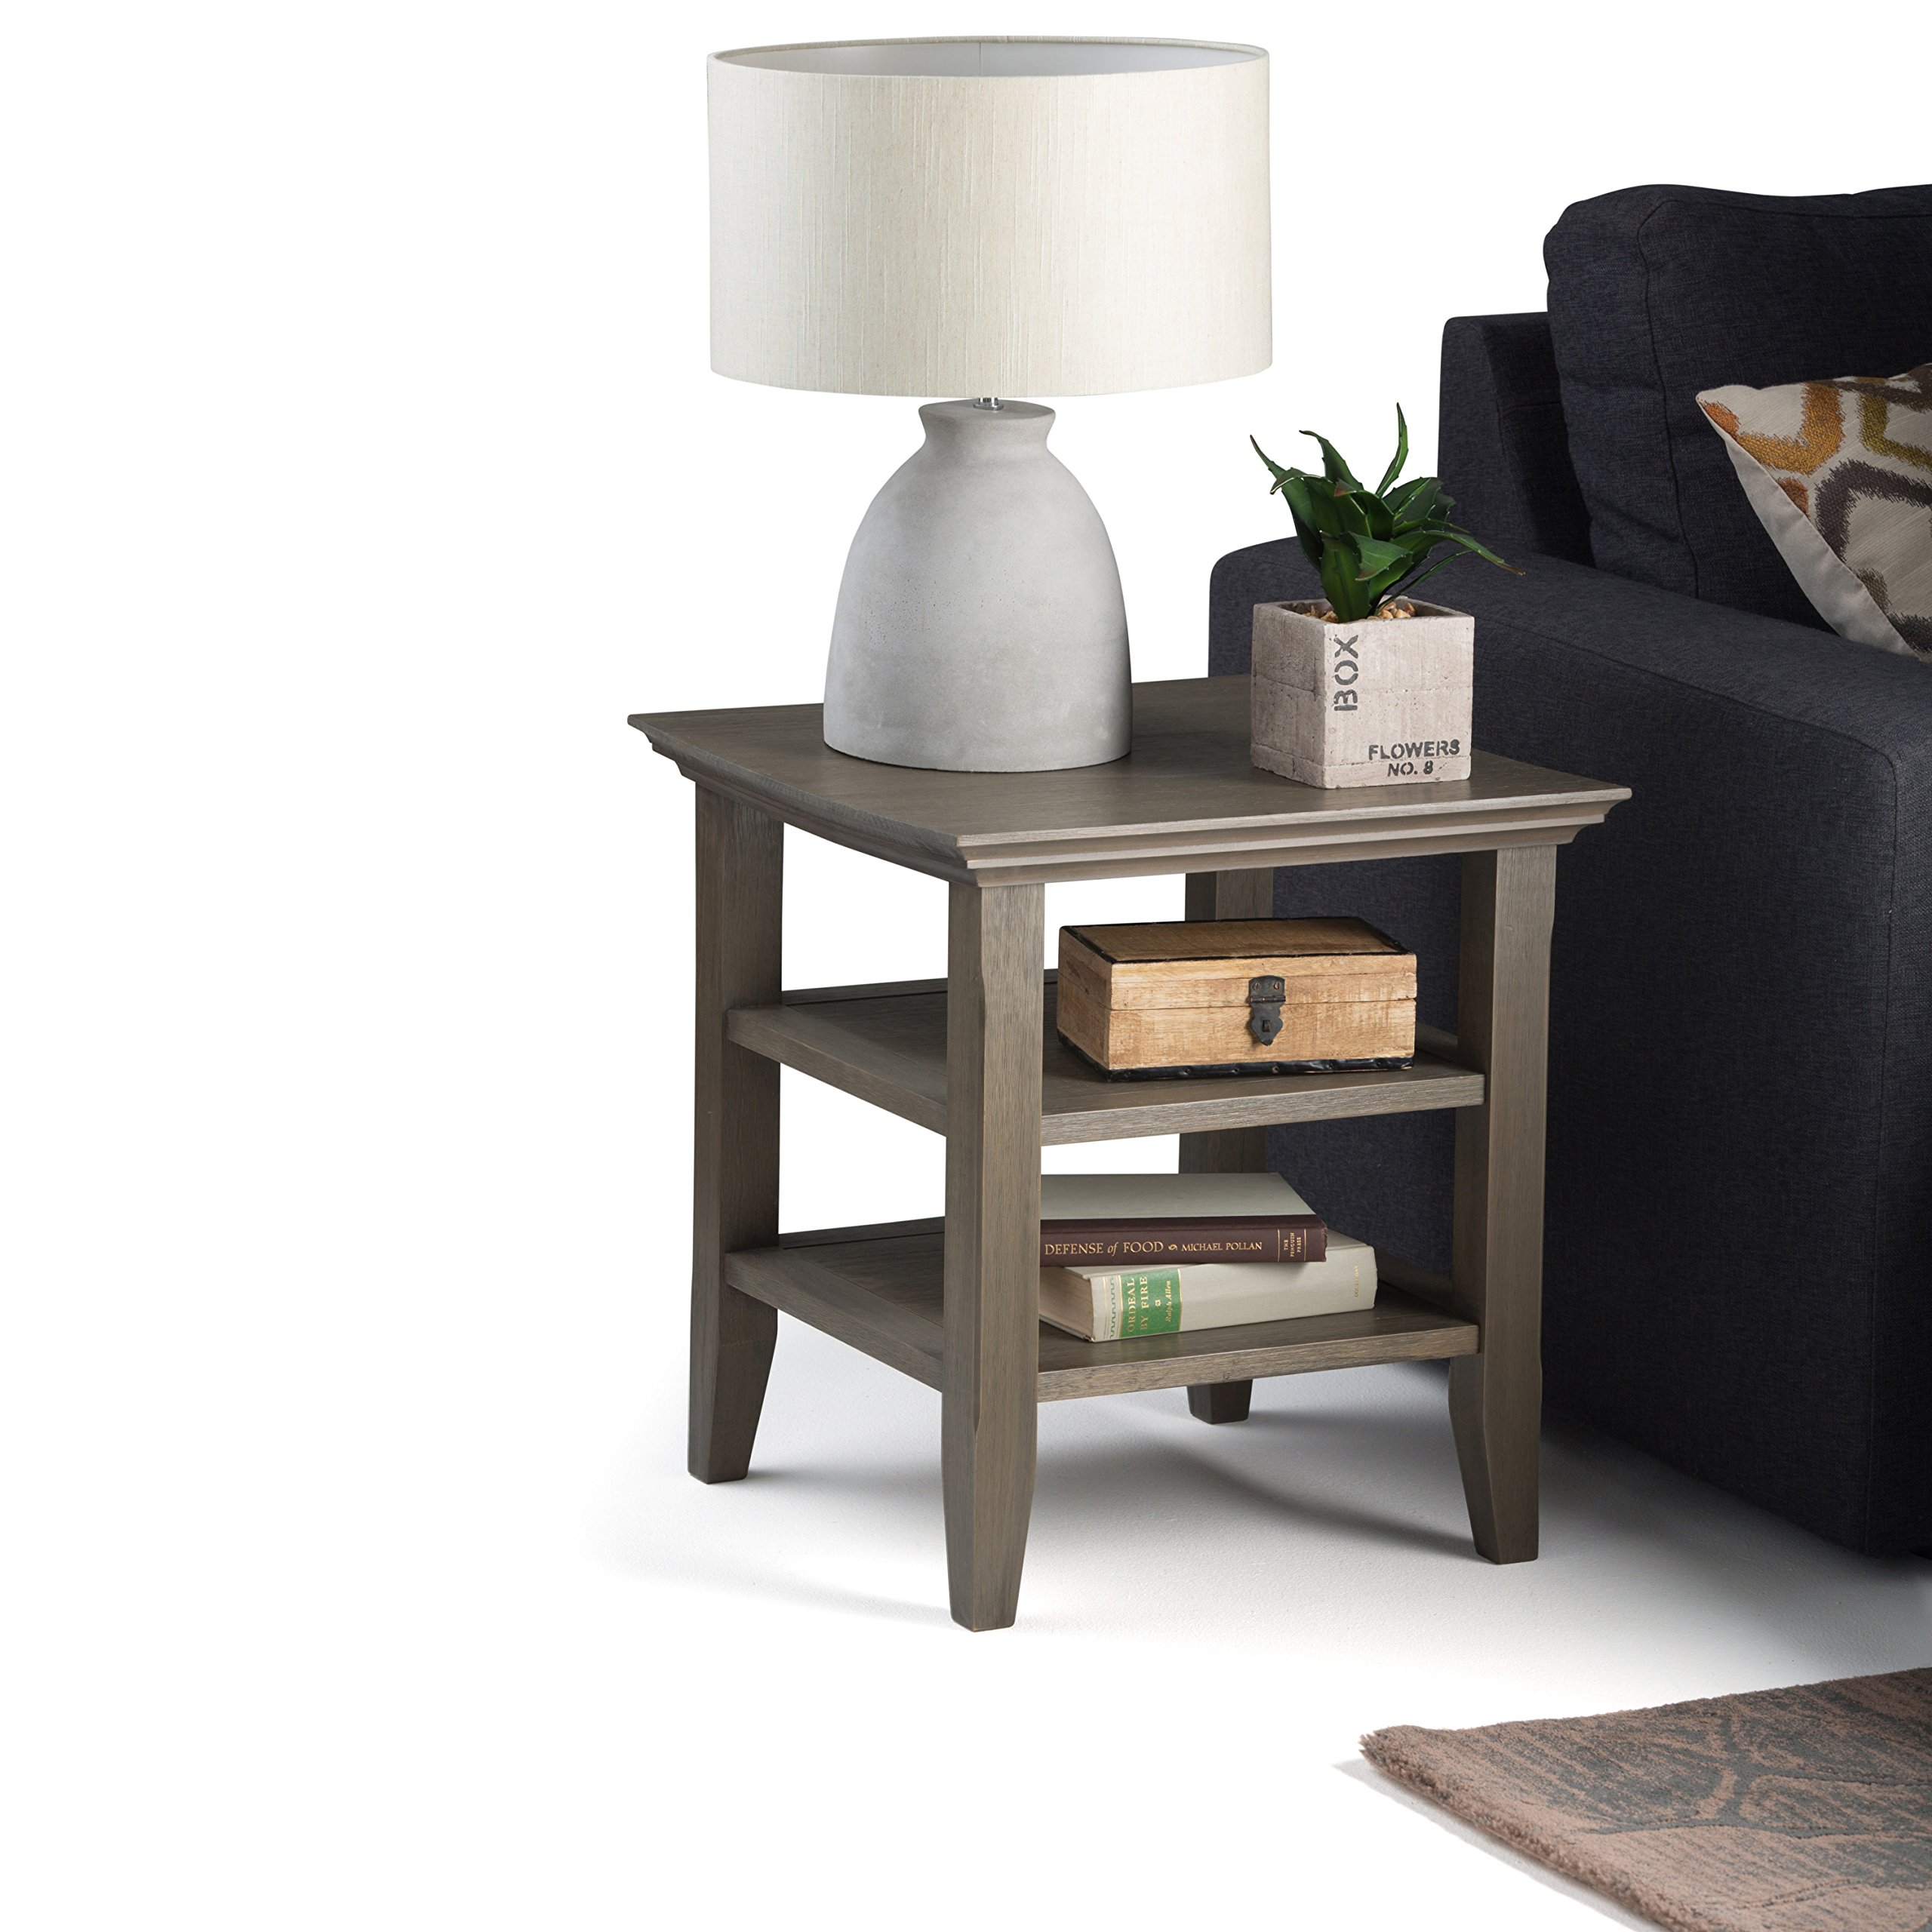 Simpli Home Acadian Solid Wood End Side Table, Farmhouse Grey by Simpli Home (Image #1)